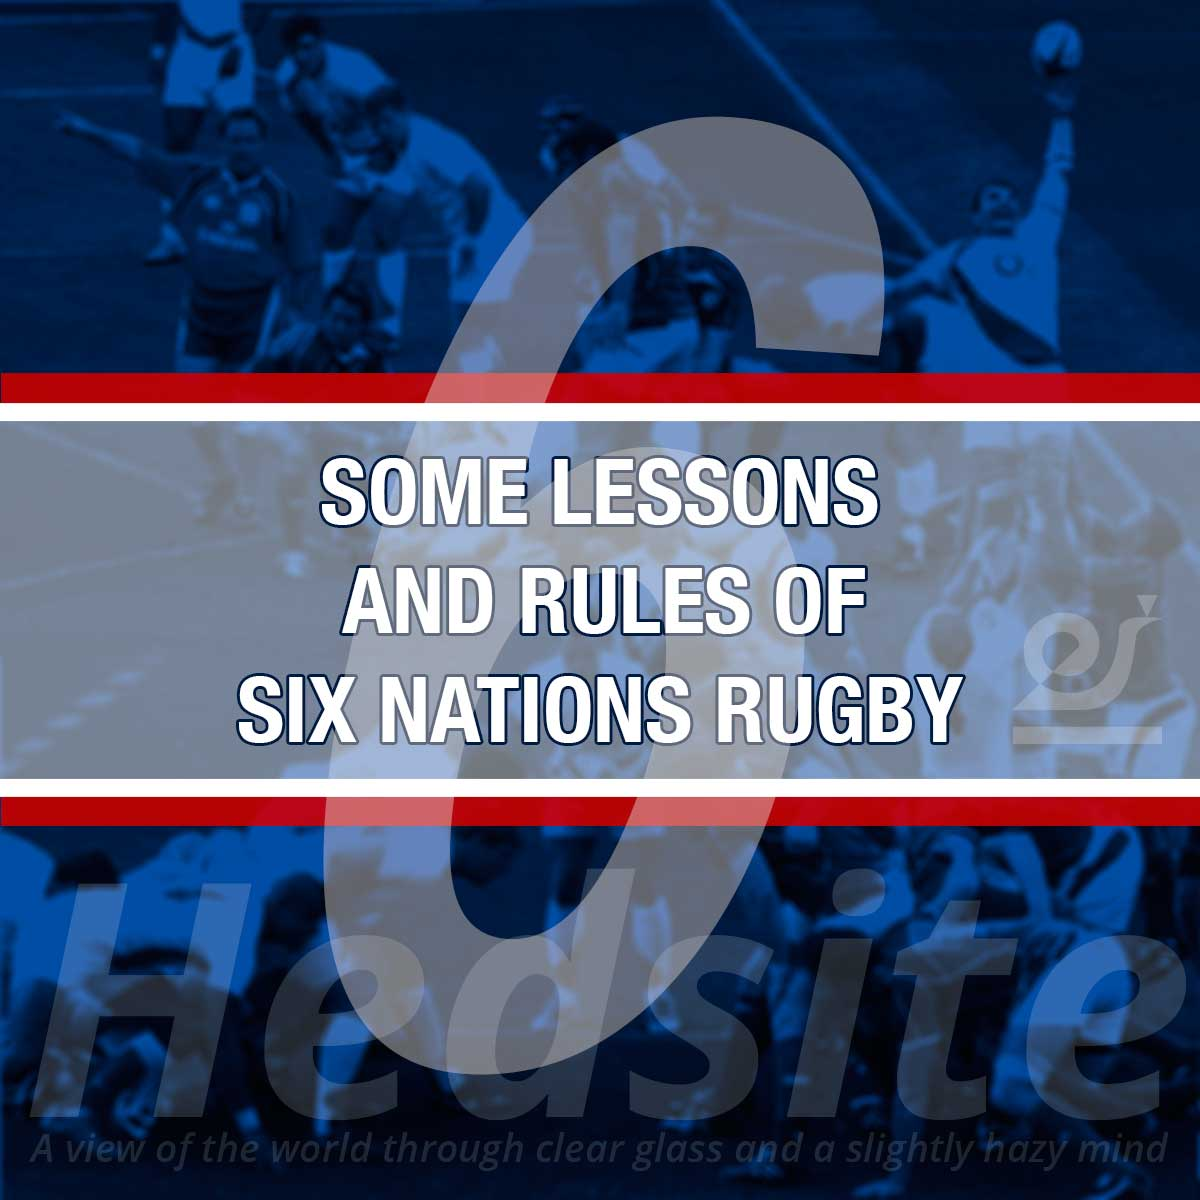 Some lessons and rules of Six Nations rugby.